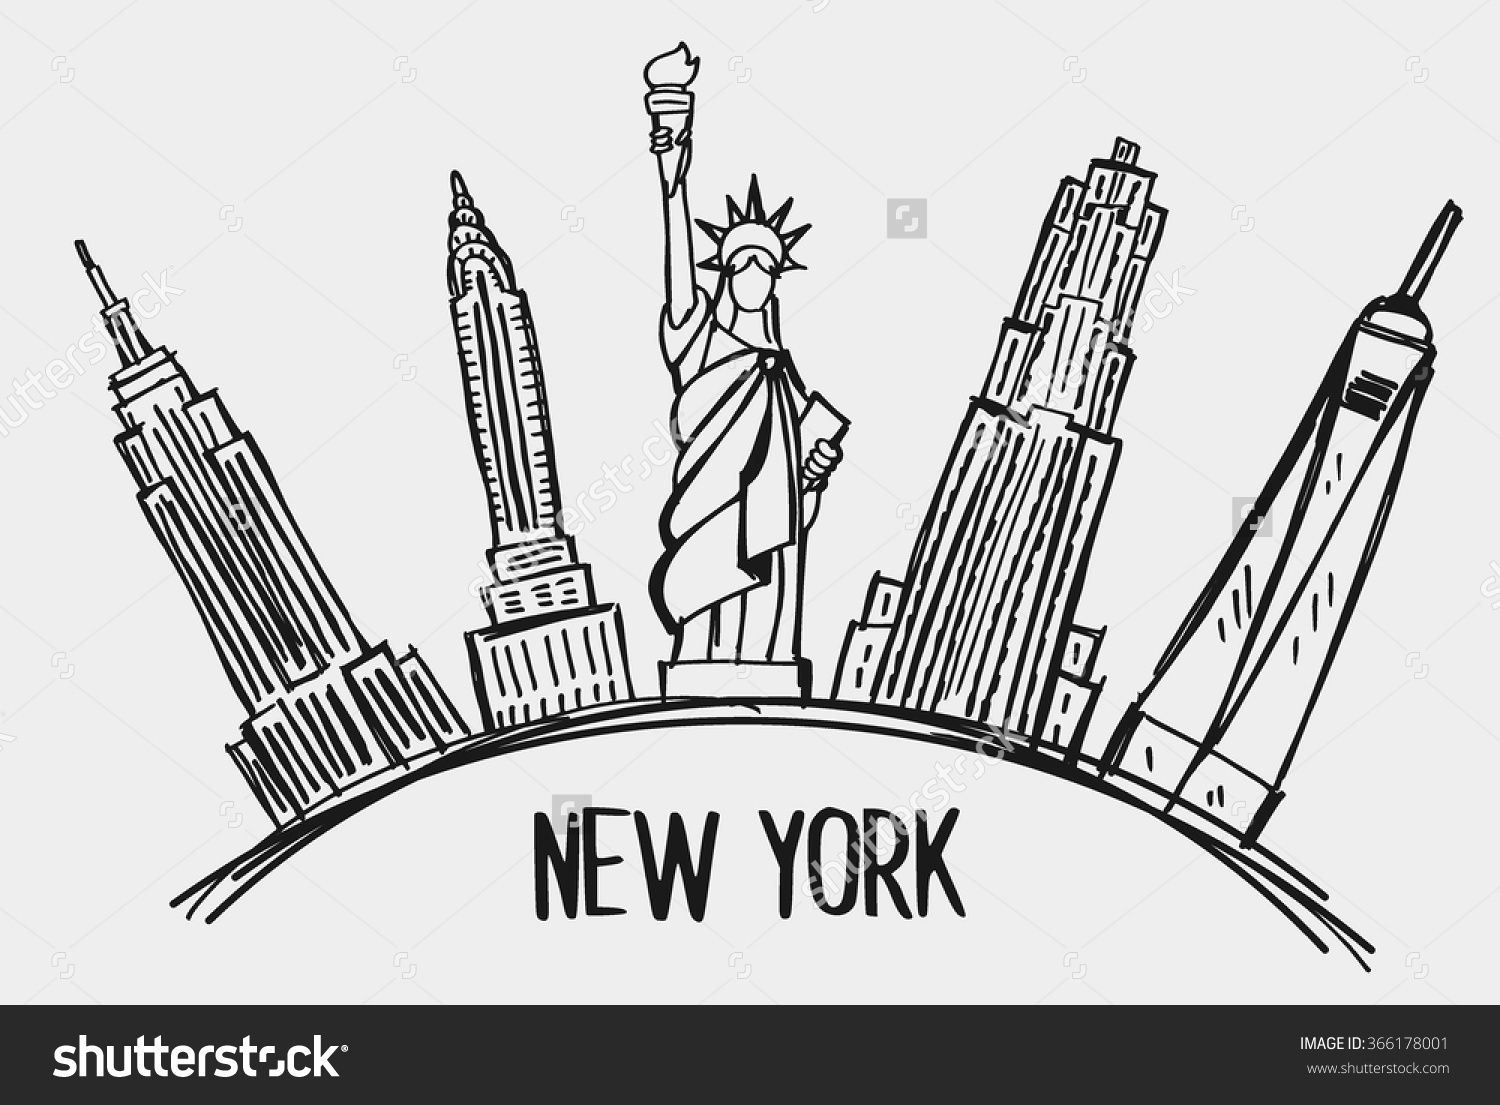 New York City Skyline Line Art Design Concept With